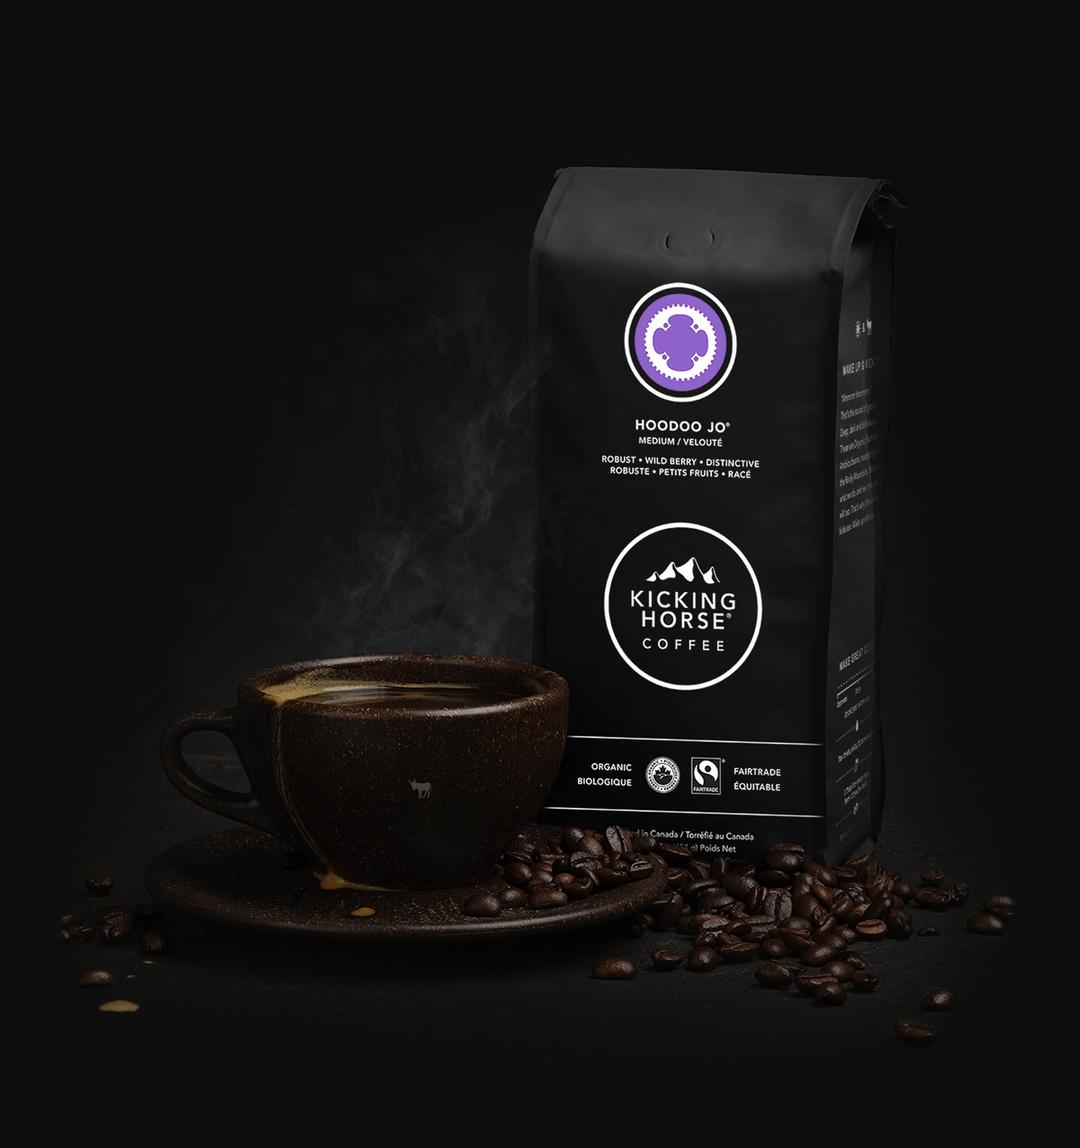 Hoodoo Jo Whole Bean coffee bag with cup of coffee and coffee beans